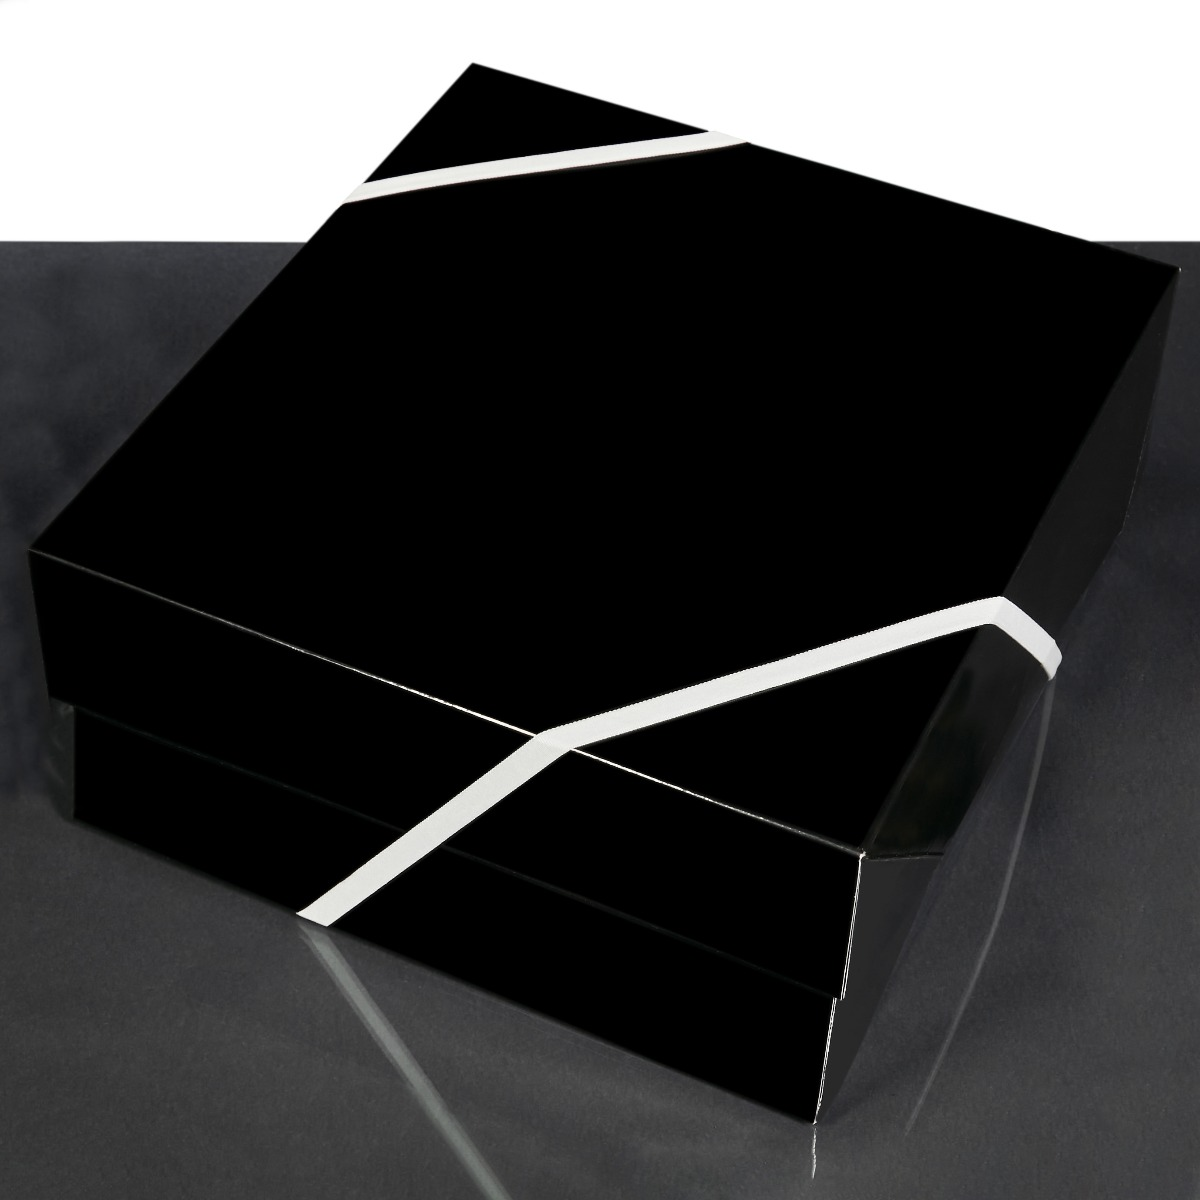 Do-It-Yourself Large Glossy Black Gift Box Add-On